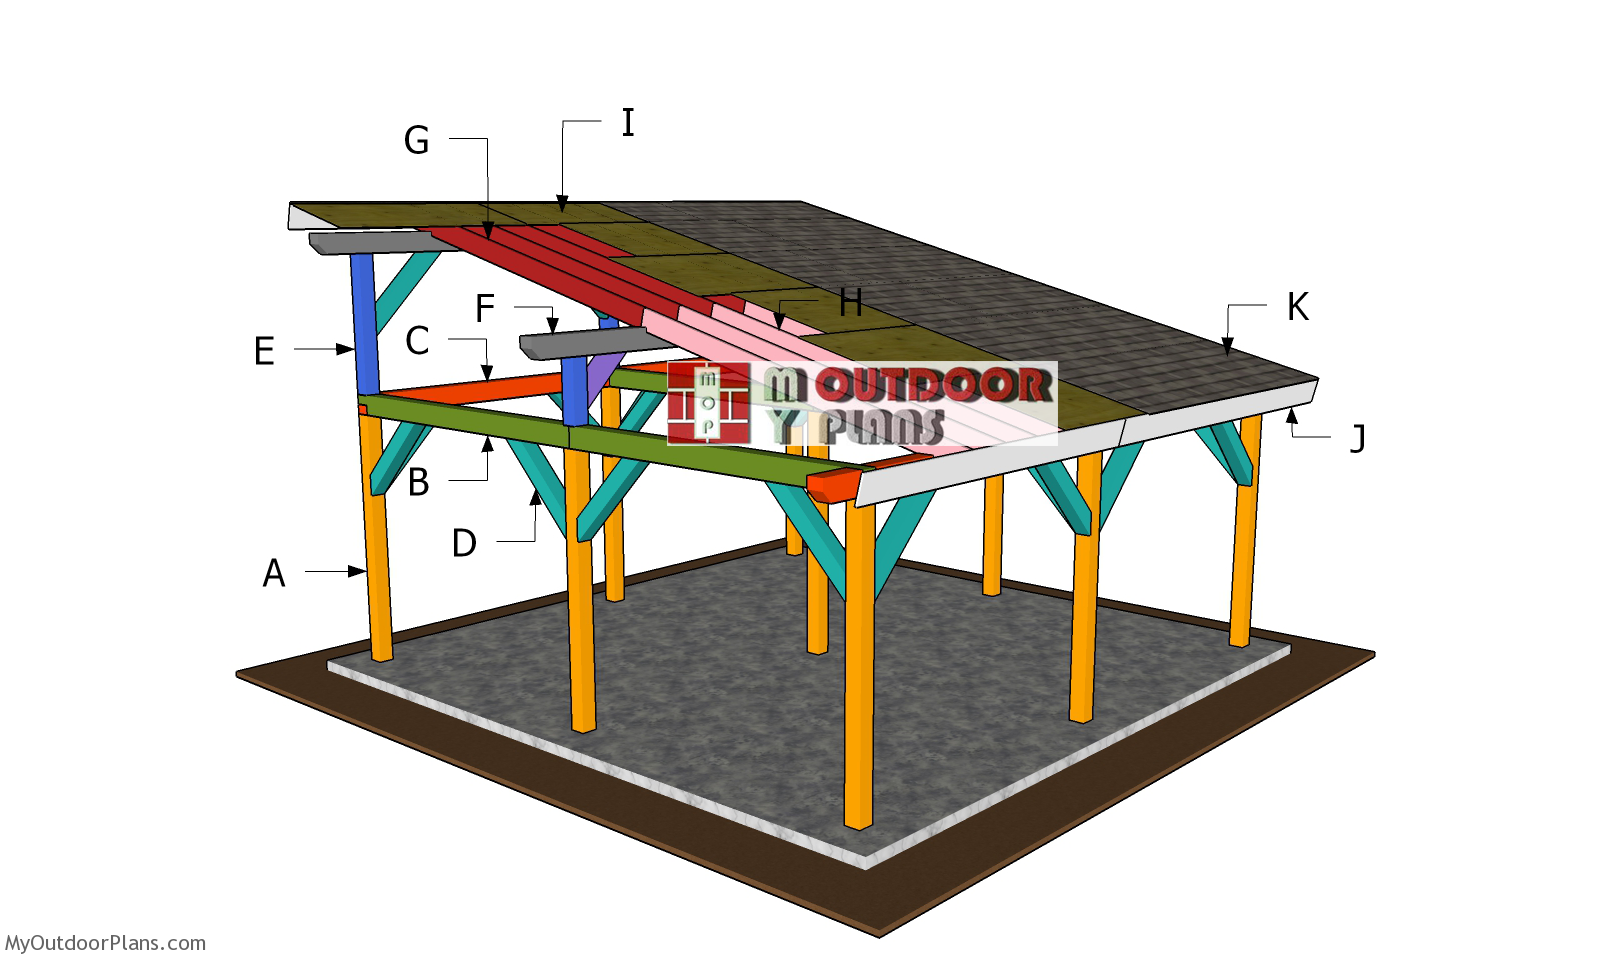 20x20 Lean to Pavilion Roof Plans